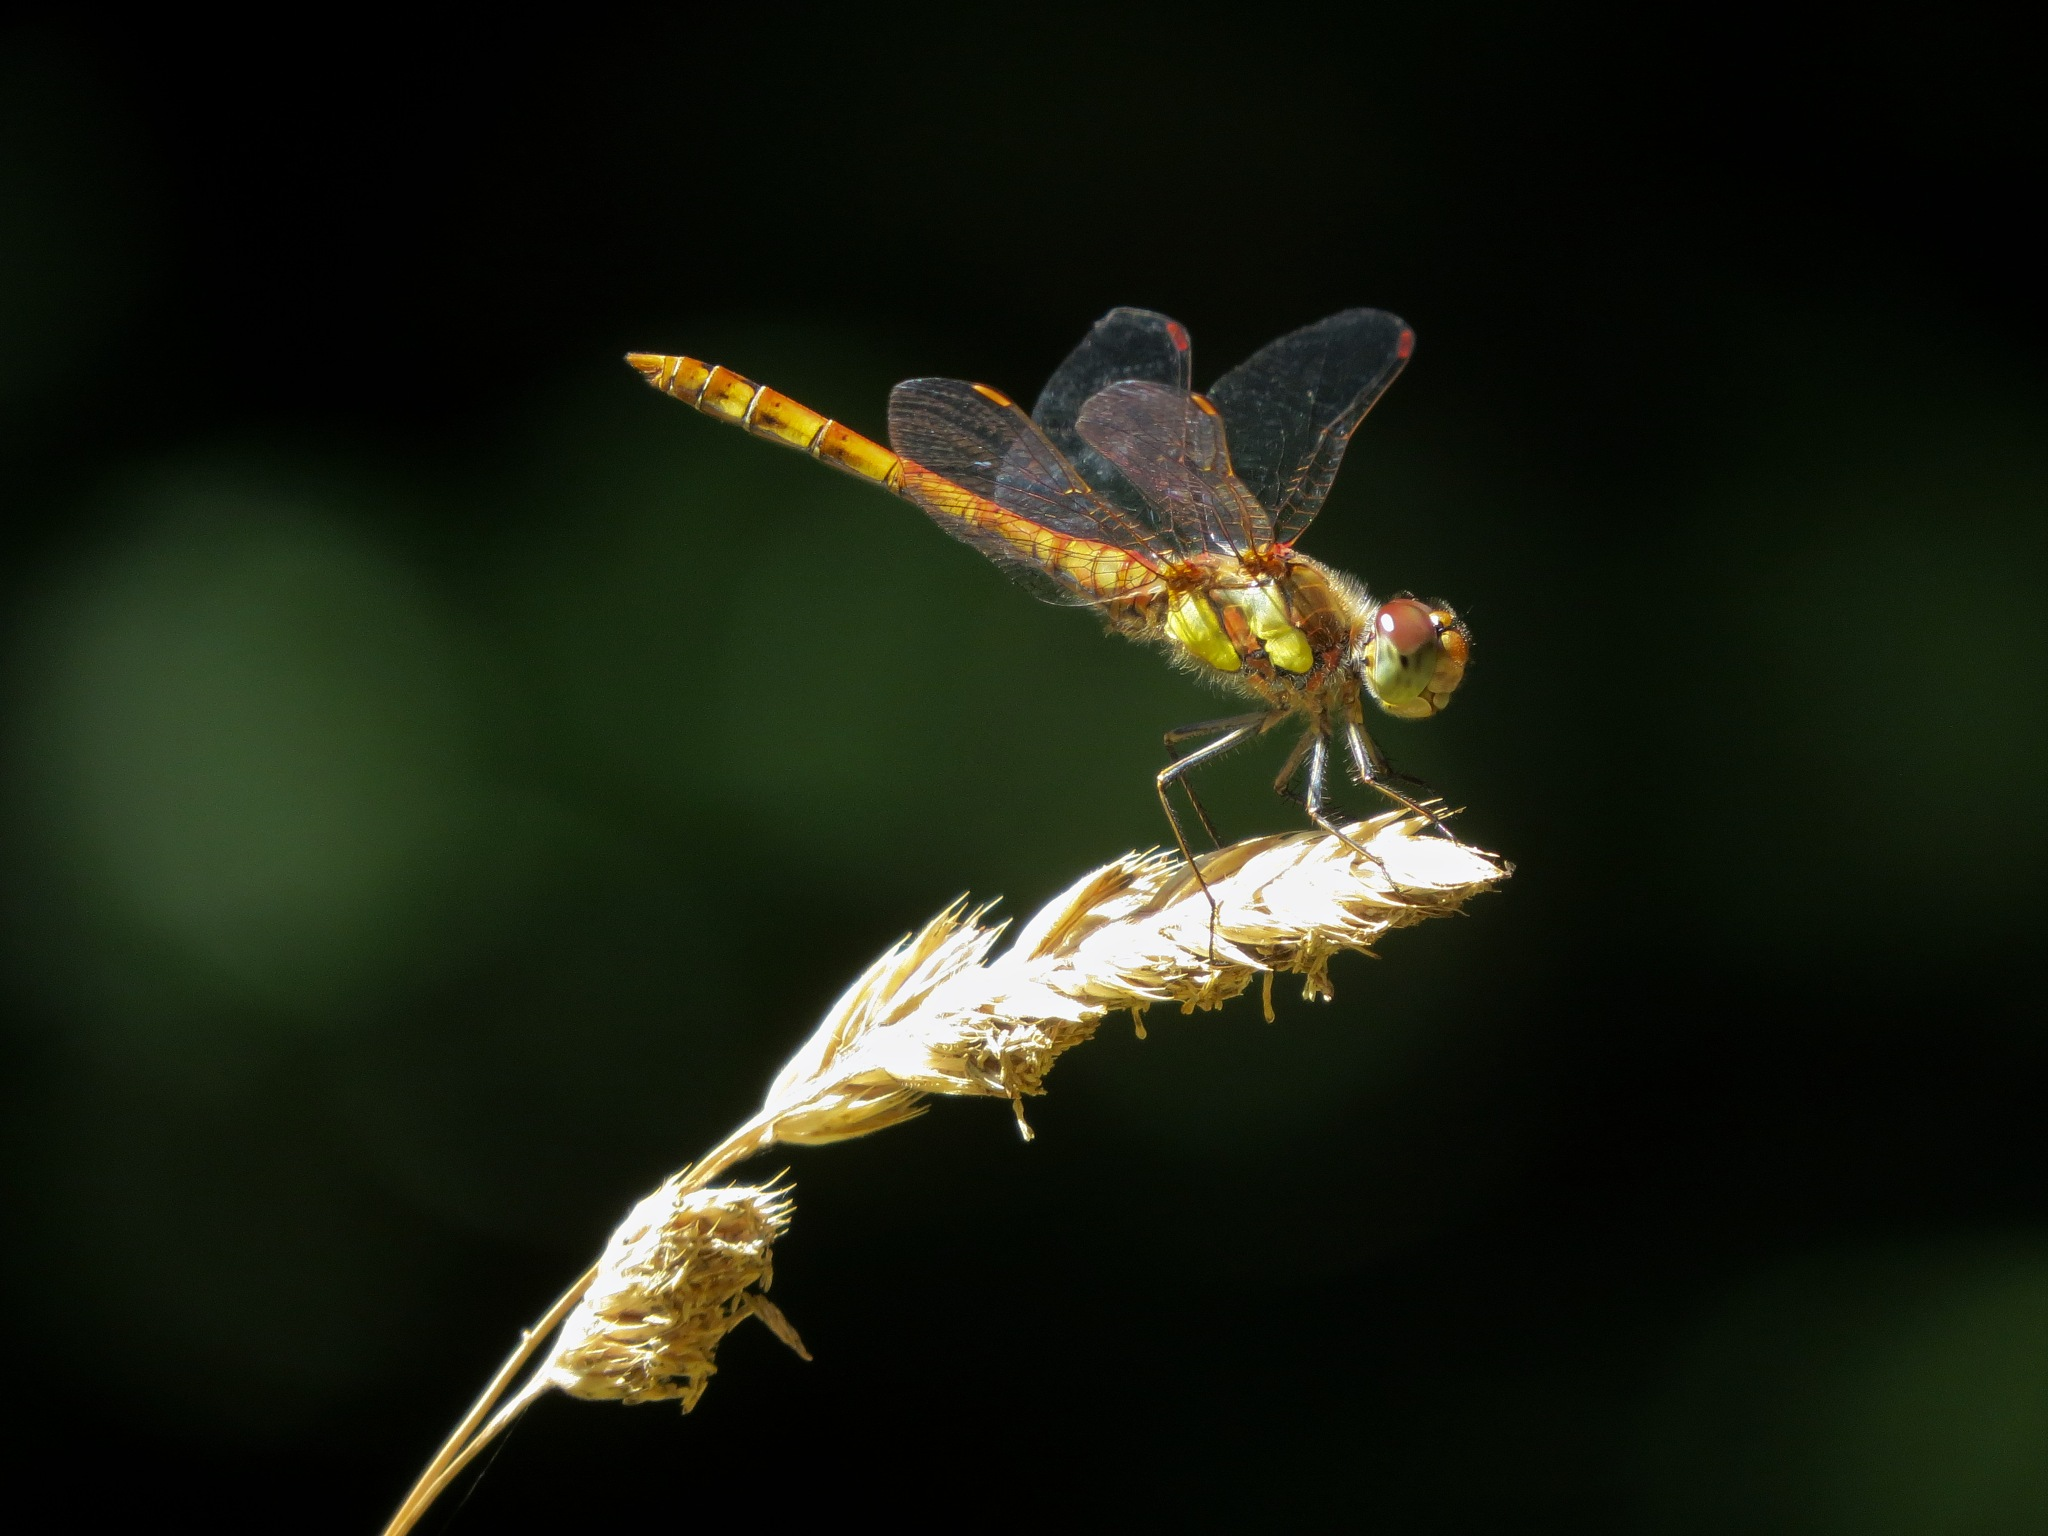 Dragonfly by June